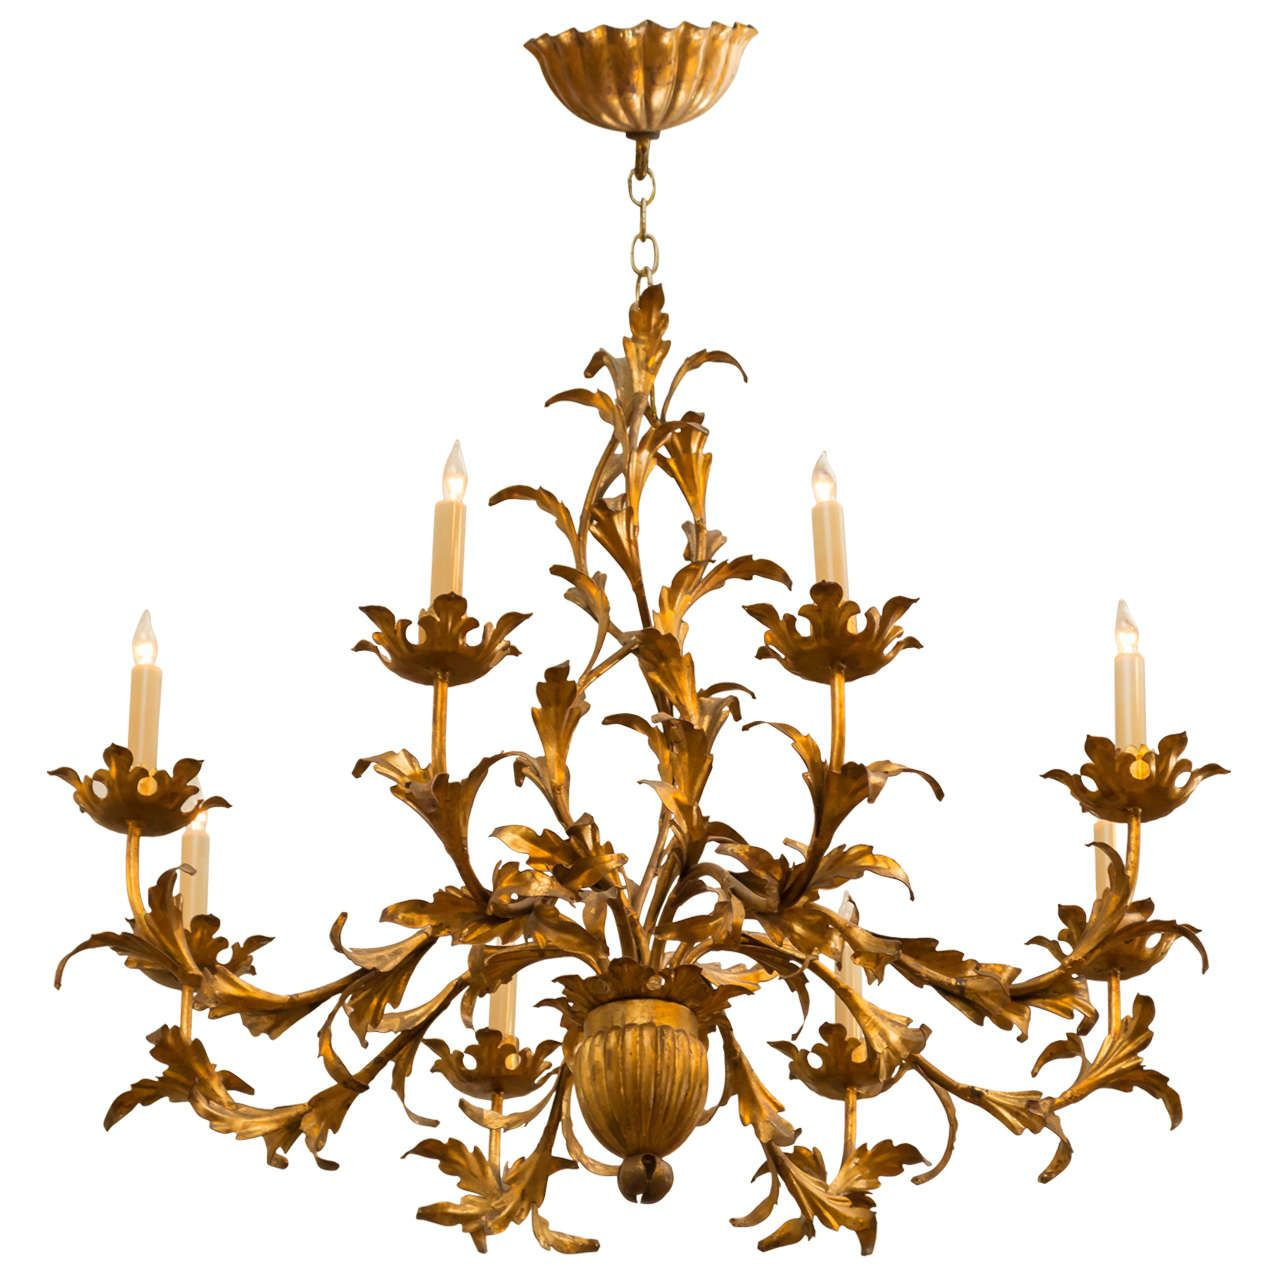 1950s italian gilt tole chandelier 1950s chandeliers and pendant 1950s italian gilt tole chandelier arubaitofo Image collections